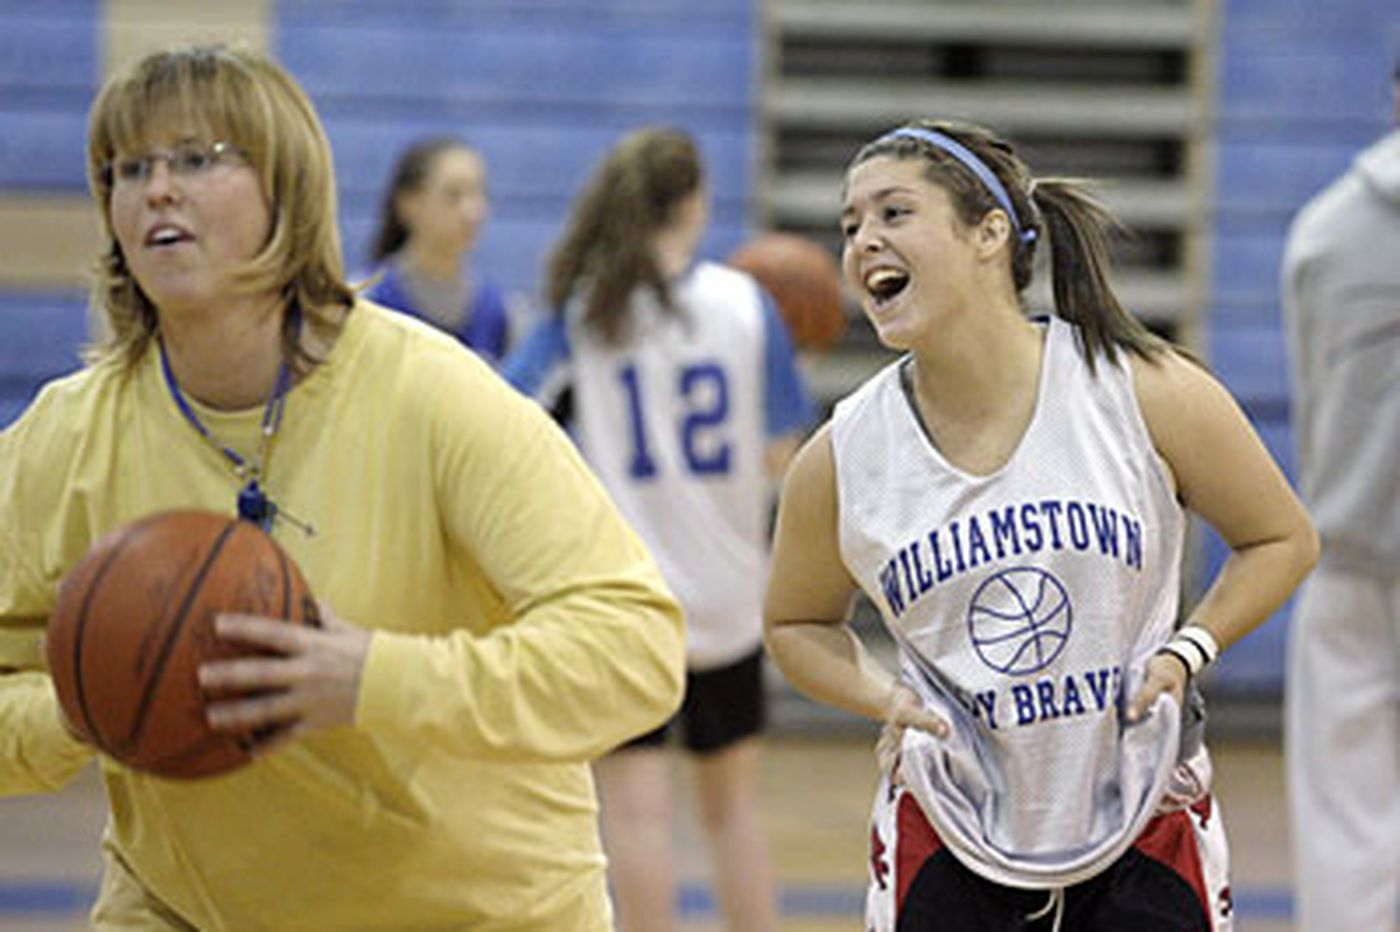 Williamstown on roll in girls' hoops